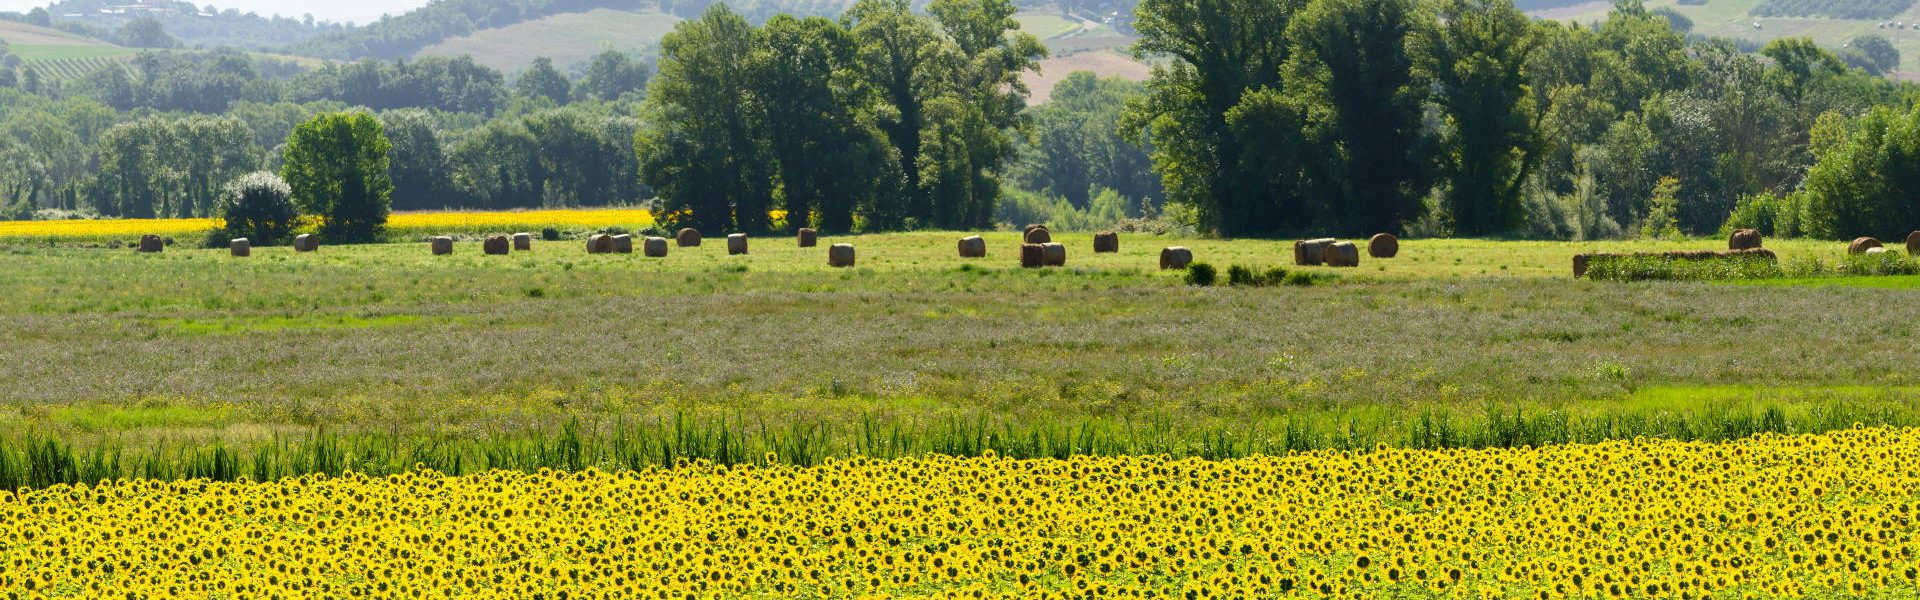 Field of sunflowers in Maremma (Tuscany, Italy) at summer